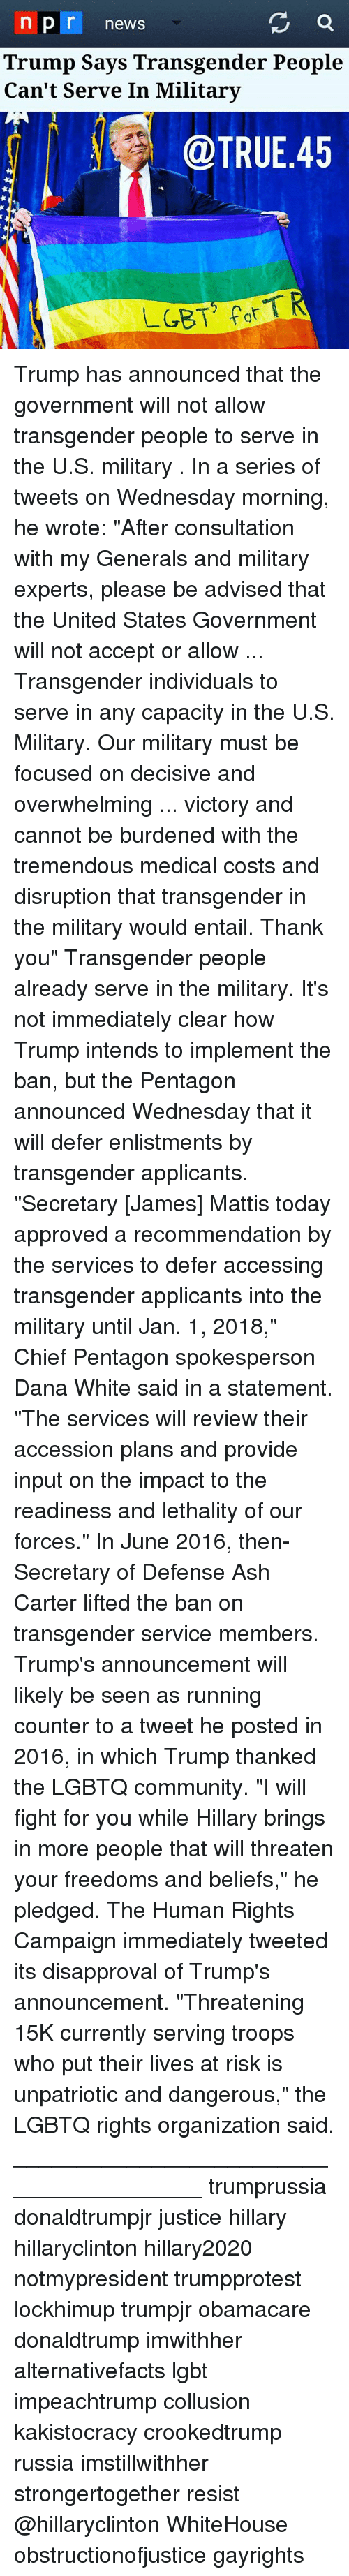 "Ash, Community, and Lgbt: n pr news  Trump Says Transgender People  Can't Serve In Military  @TRUE.45 Trump has announced that the government will not allow transgender people to serve in the U.S. military . In a series of tweets on Wednesday morning, he wrote: ""After consultation with my Generals and military experts, please be advised that the United States Government will not accept or allow ... Transgender individuals to serve in any capacity in the U.S. Military. Our military must be focused on decisive and overwhelming ... victory and cannot be burdened with the tremendous medical costs and disruption that transgender in the military would entail. Thank you"" Transgender people already serve in the military. It's not immediately clear how Trump intends to implement the ban, but the Pentagon announced Wednesday that it will defer enlistments by transgender applicants. ""Secretary [James] Mattis today approved a recommendation by the services to defer accessing transgender applicants into the military until Jan. 1, 2018,"" Chief Pentagon spokesperson Dana White said in a statement. ""The services will review their accession plans and provide input on the impact to the readiness and lethality of our forces."" In June 2016, then-Secretary of Defense Ash Carter lifted the ban on transgender service members. Trump's announcement will likely be seen as running counter to a tweet he posted in 2016, in which Trump thanked the LGBTQ community. ""I will fight for you while Hillary brings in more people that will threaten your freedoms and beliefs,"" he pledged. The Human Rights Campaign immediately tweeted its disapproval of Trump's announcement. ""Threatening 15K currently serving troops who put their lives at risk is unpatriotic and dangerous,"" the LGBTQ rights organization said. ________________________________________ trumprussia donaldtrumpjr justice hillary hillaryclinton hillary2020 notmypresident trumpprotest lockhimup trumpjr obamacare donaldtrump imwithher alternativefacts lgbt impeachtrump collusion kakistocracy crookedtrump russia imstillwithher strongertogether resist @hillaryclinton WhiteHouse obstructionofjustice gayrights"